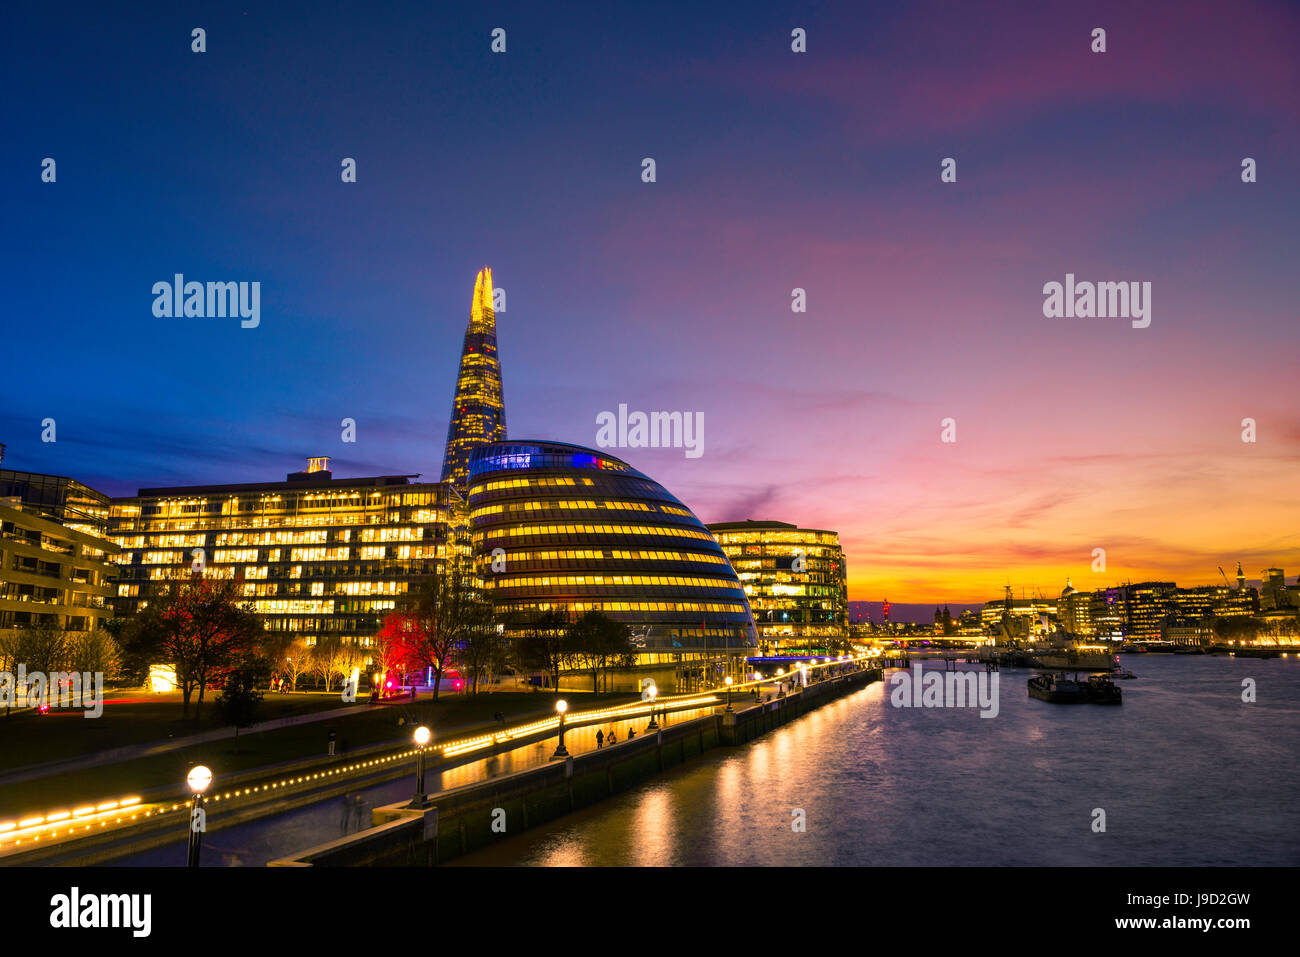 Promenade on the Thames, Skyline of the office complex More London Riverside, London City Hall, City Hall, The Shard - Stock Image